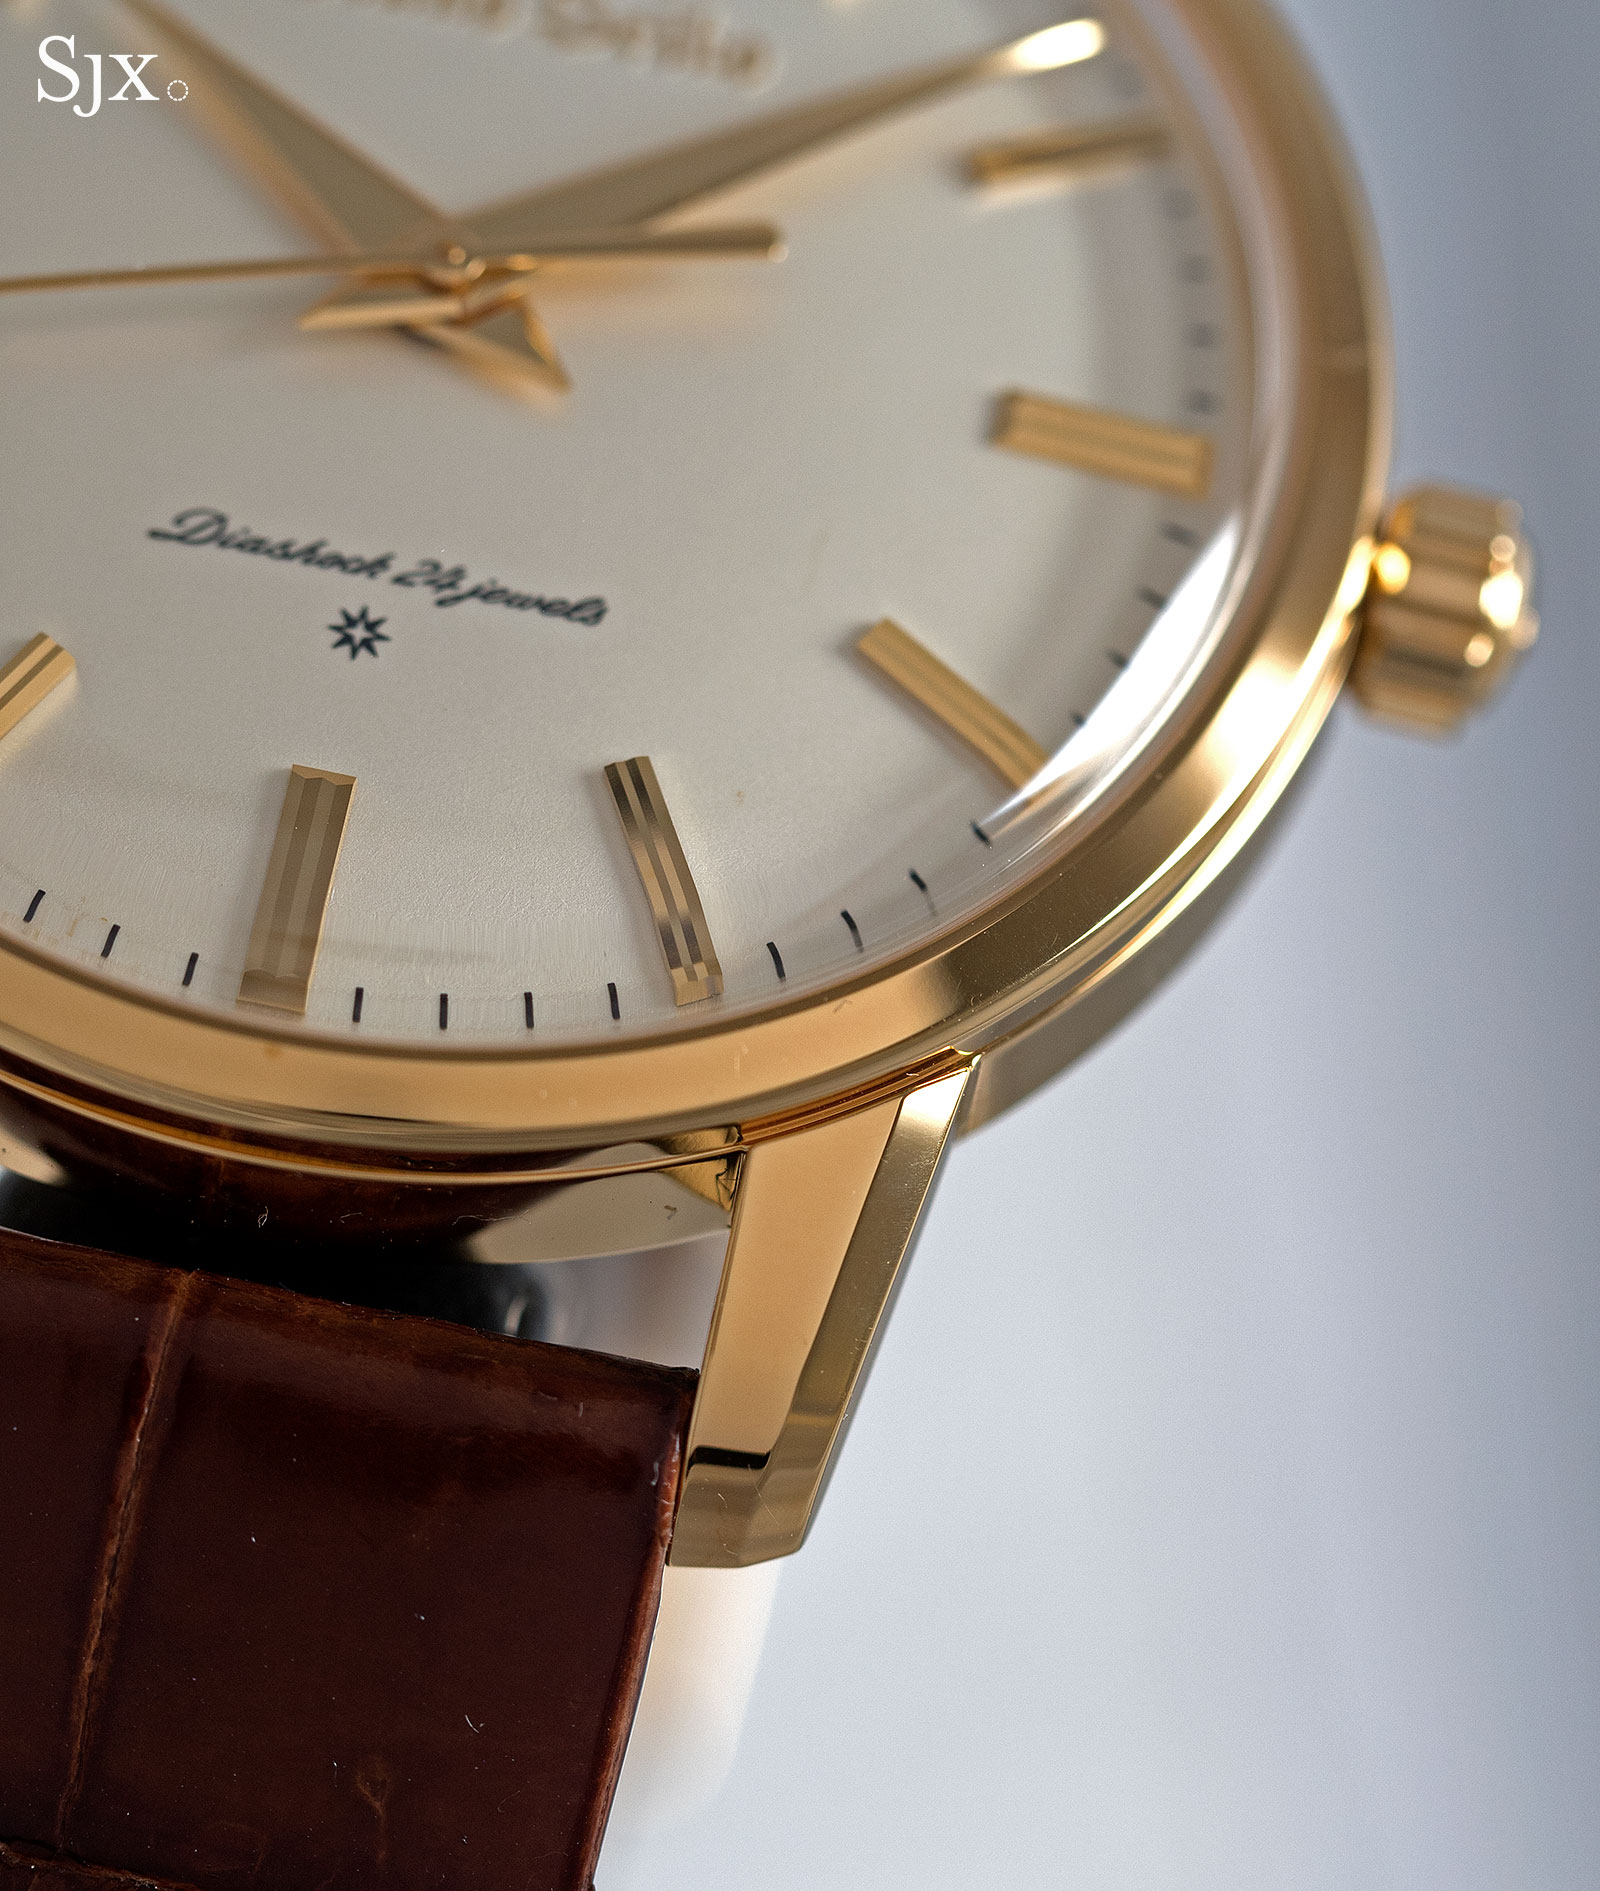 Grand Seiko remake SBGW252 gold 6